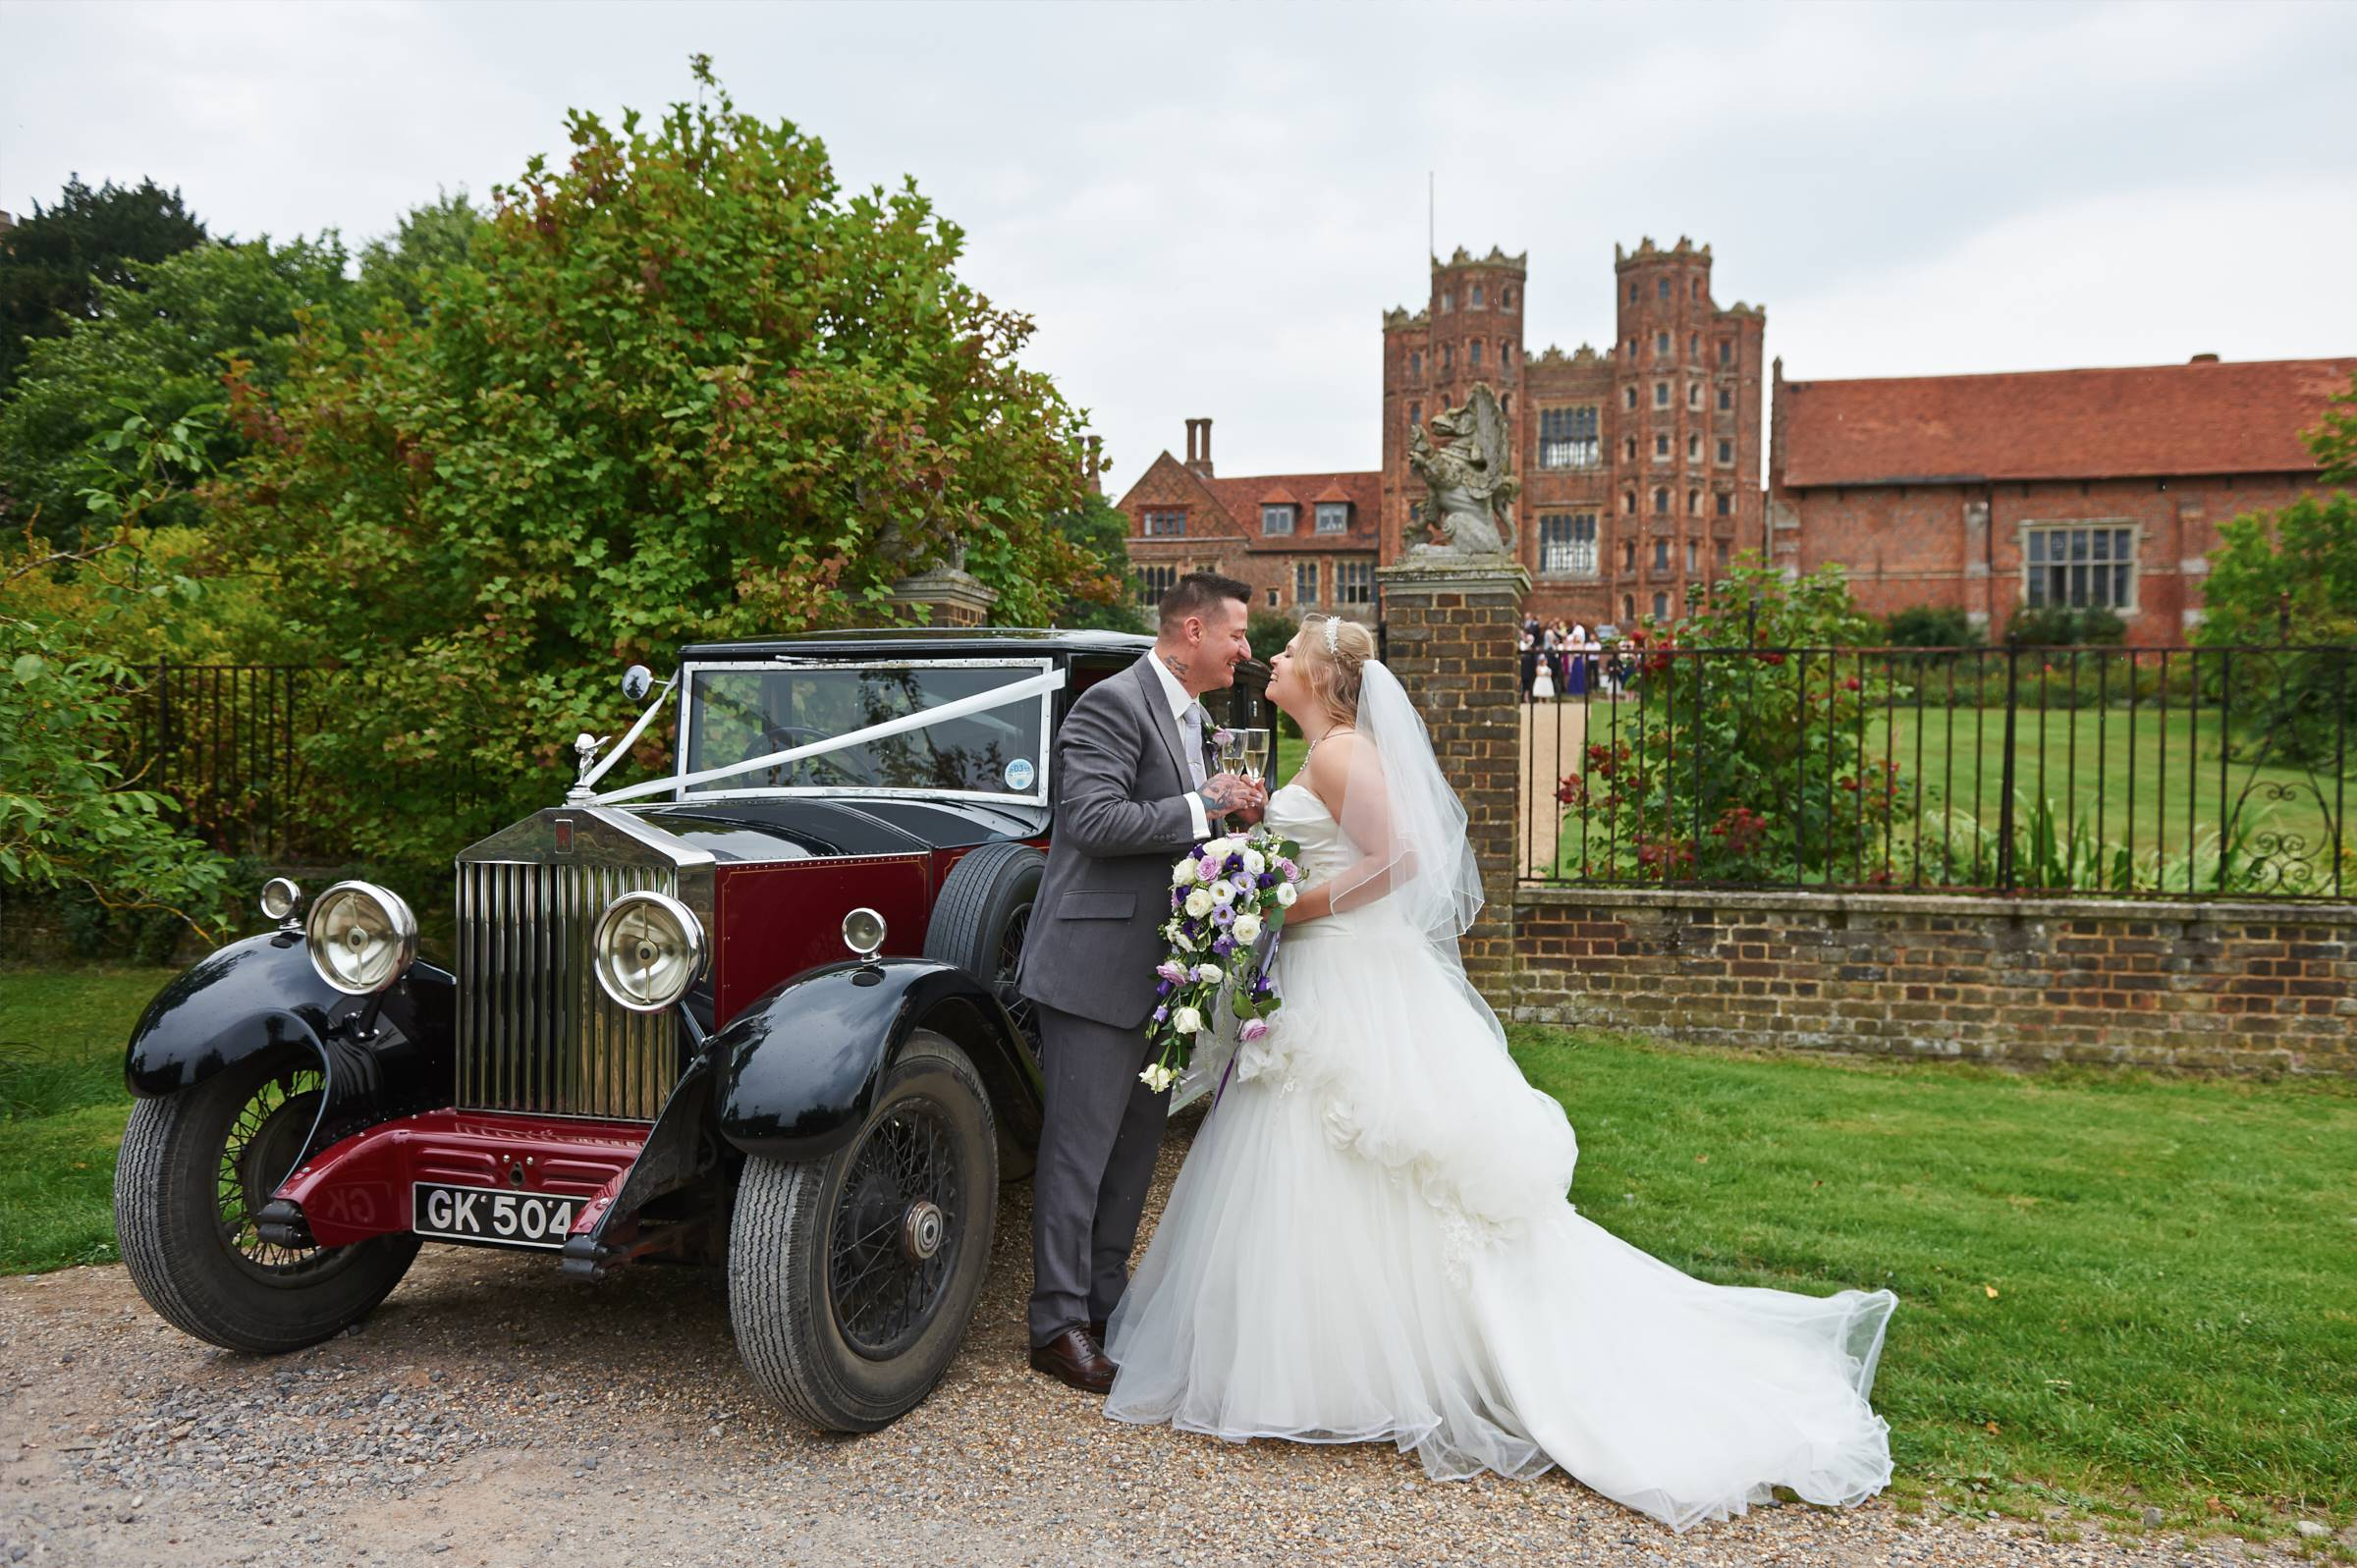 Bride and Groom with vintage Rolls Royce